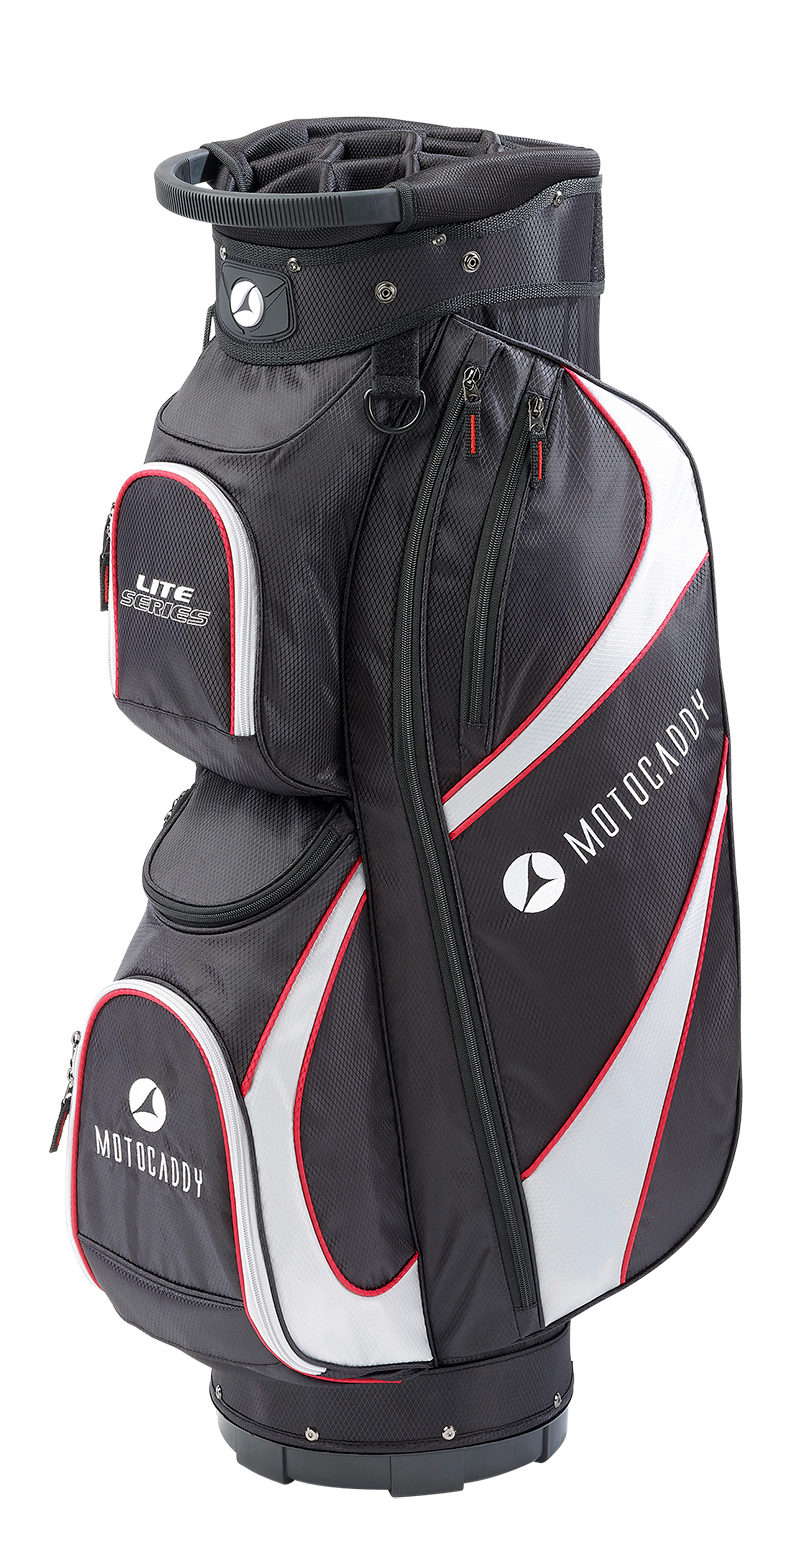 Motocaddy launches Lite-Series cart bag range